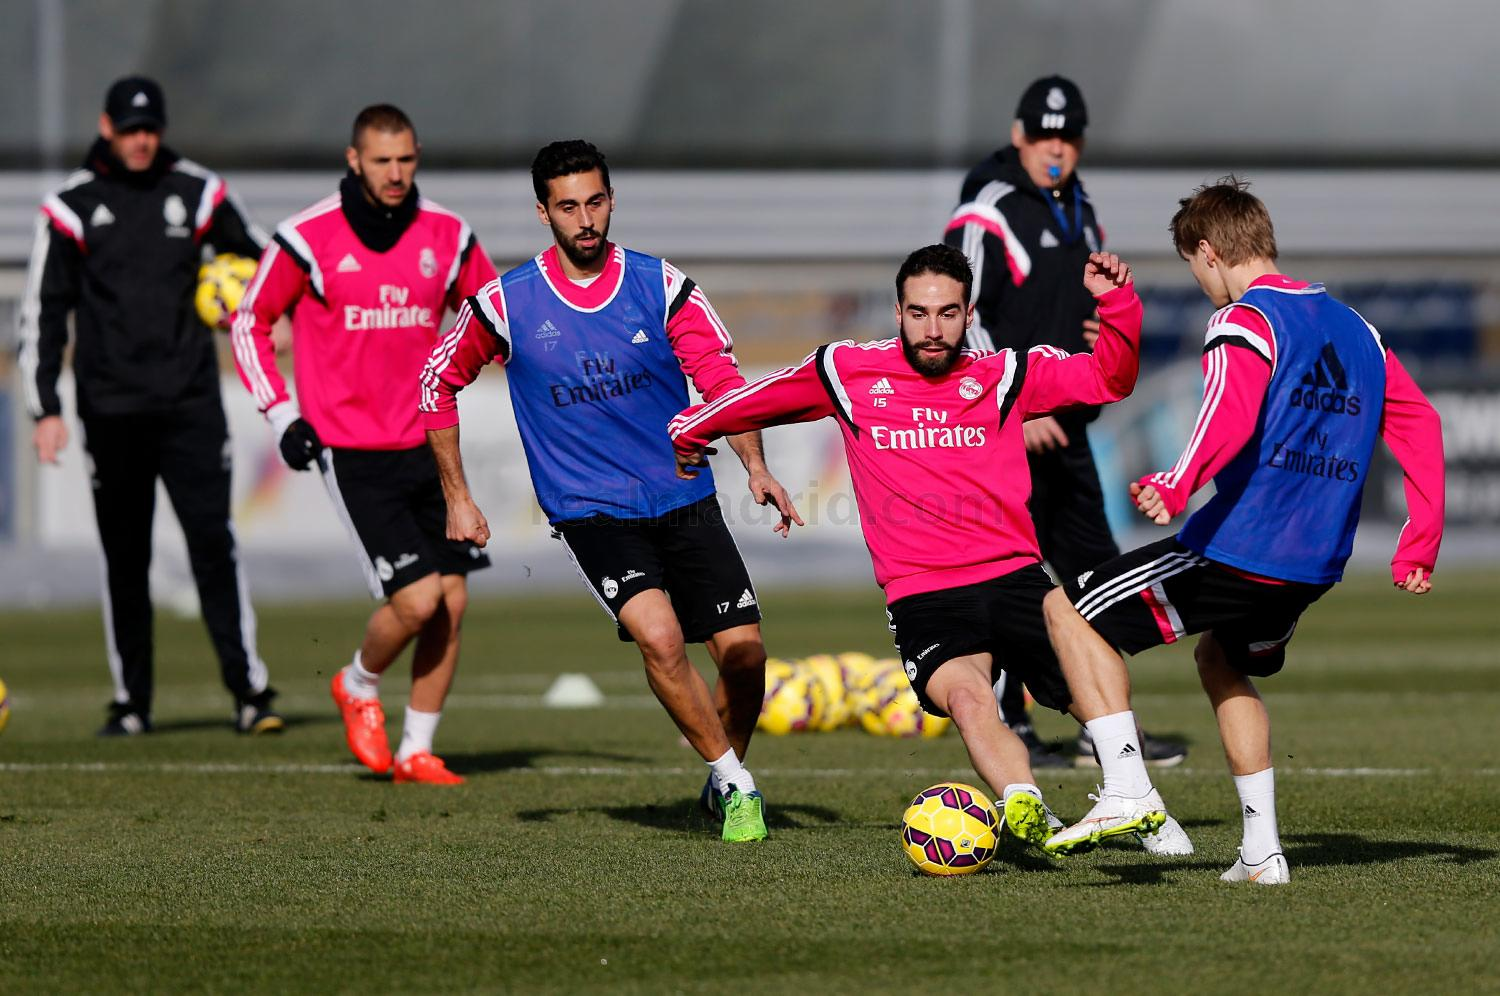 Real Madrid - Entrenamiento del Real Madrid - 29-01-2015